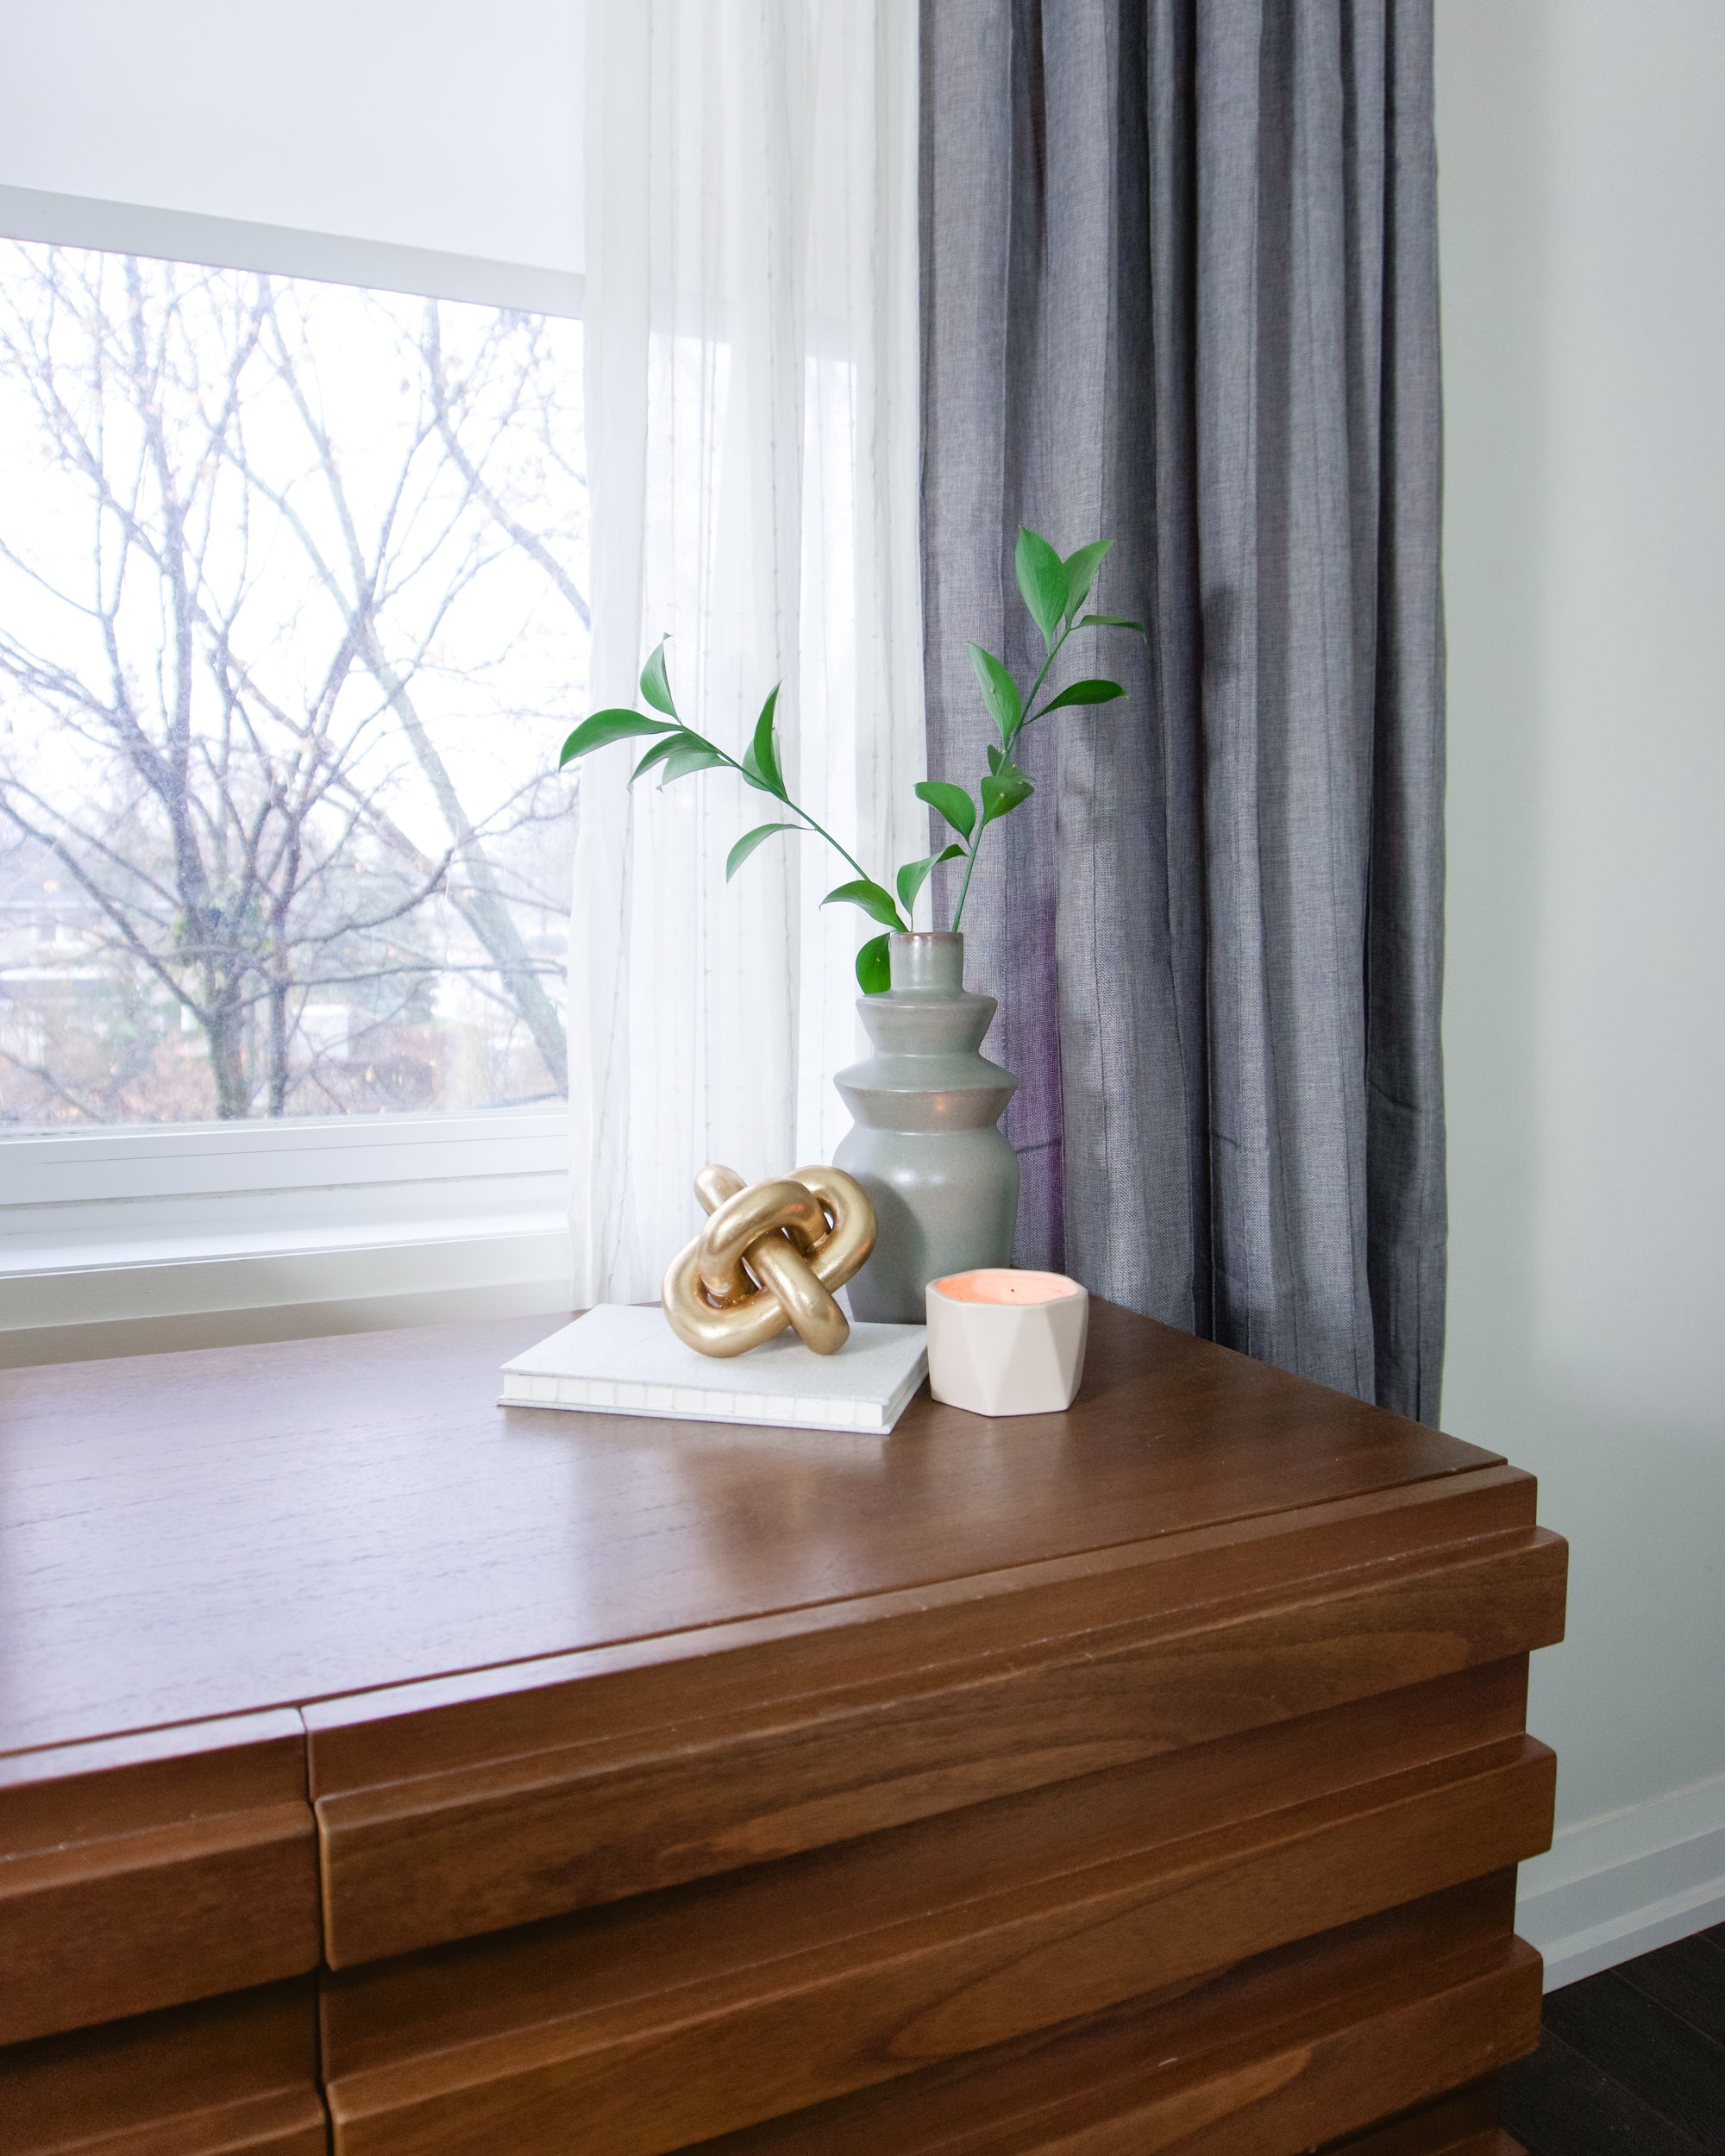 A cute plant in eccentric grey vase nested on a wooden dresser by the window